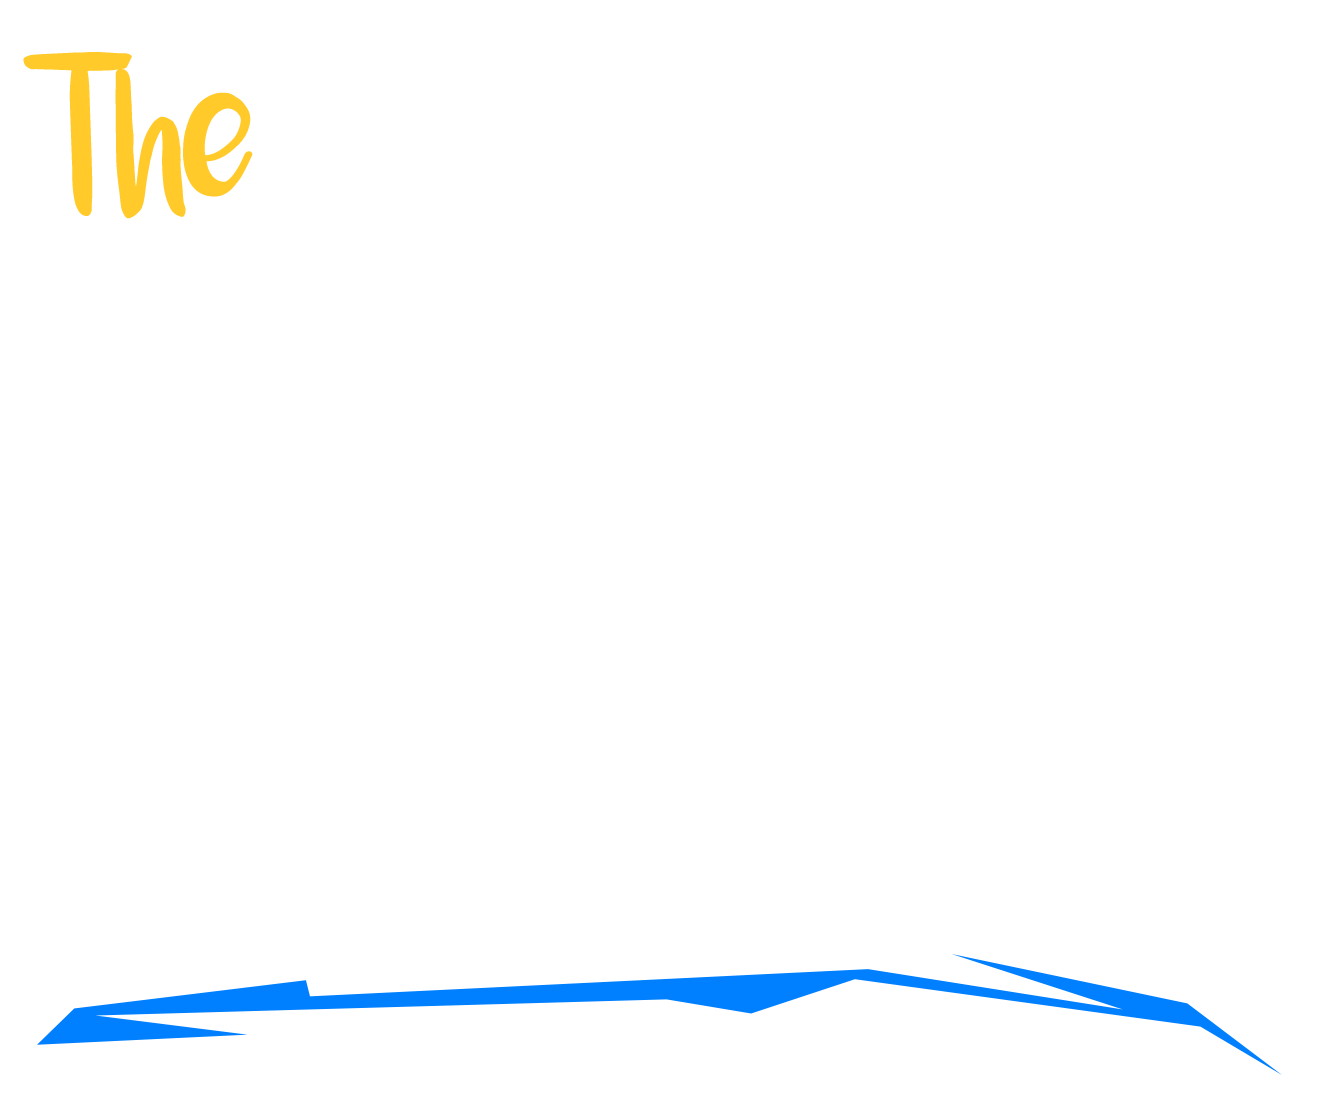 The Travelling Glutton